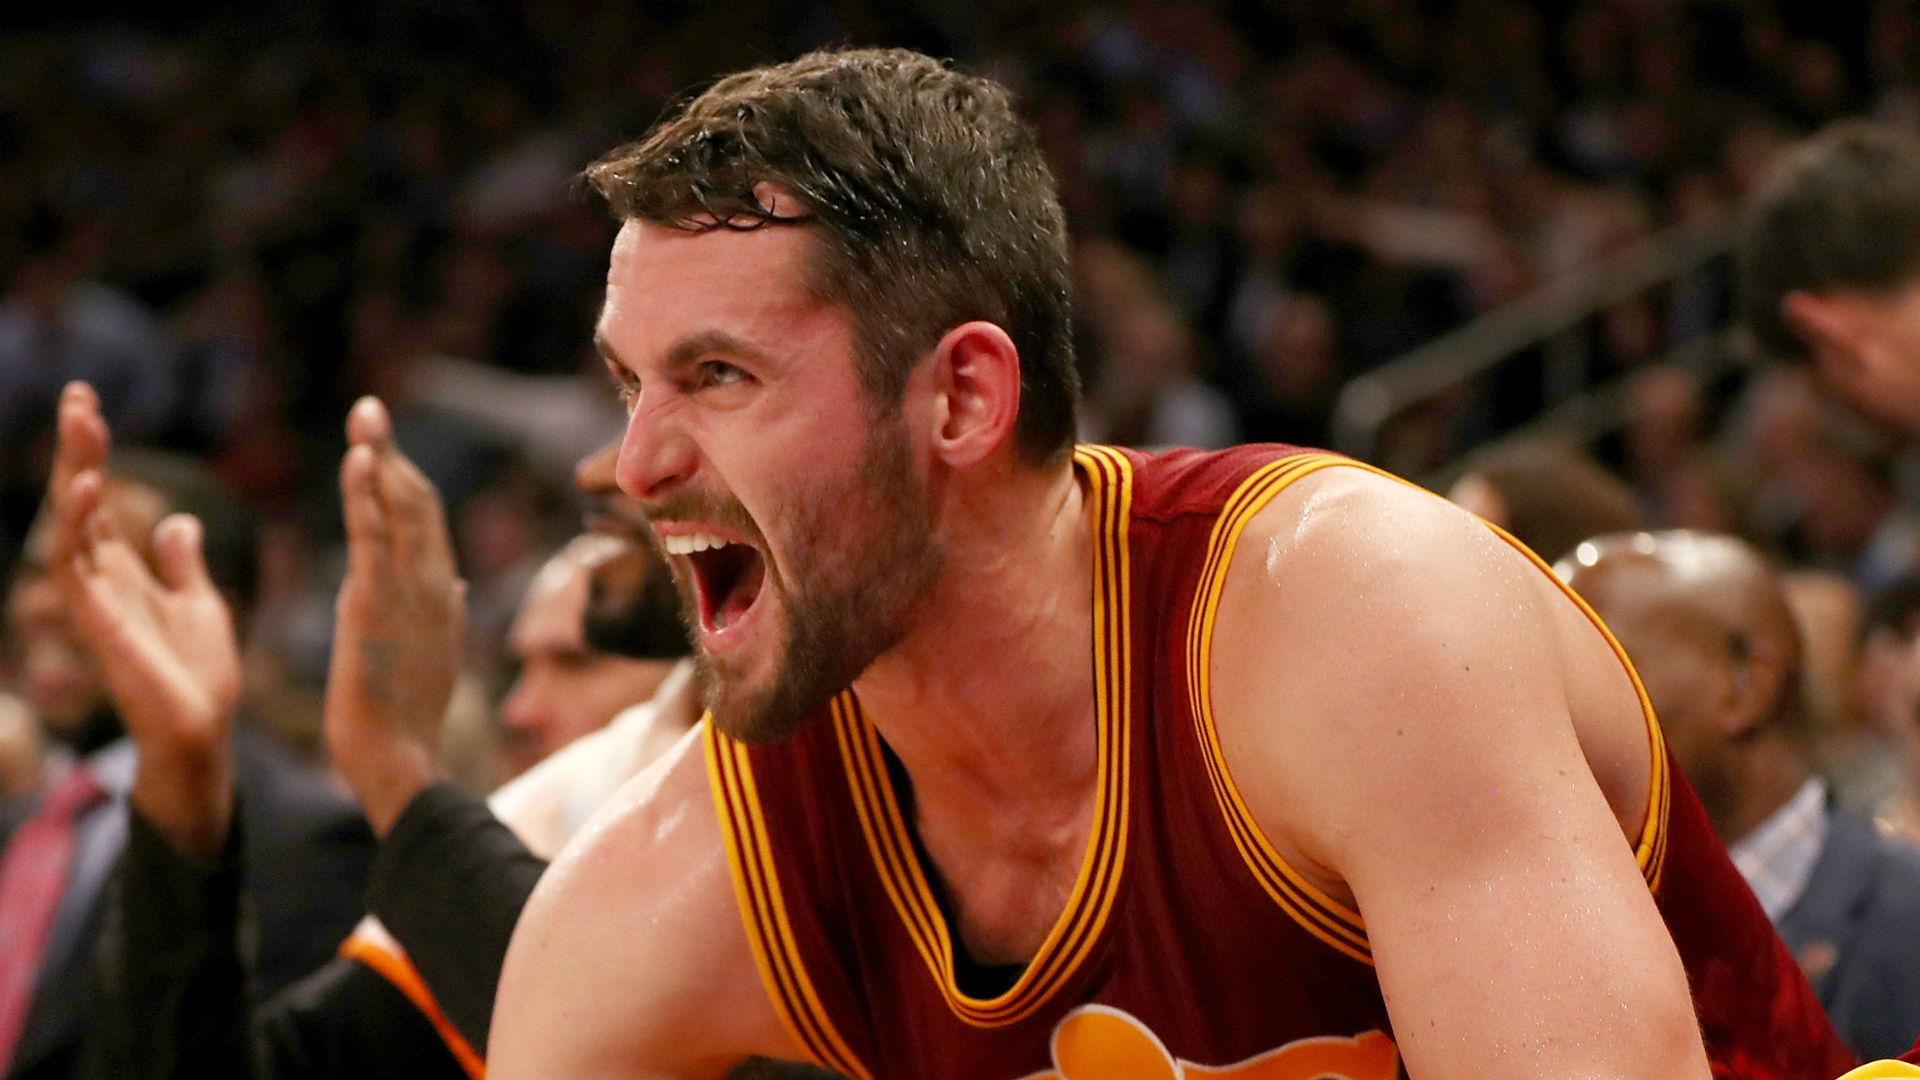 Steve Kerr happy Cavs' Kevin Love is cleared to play